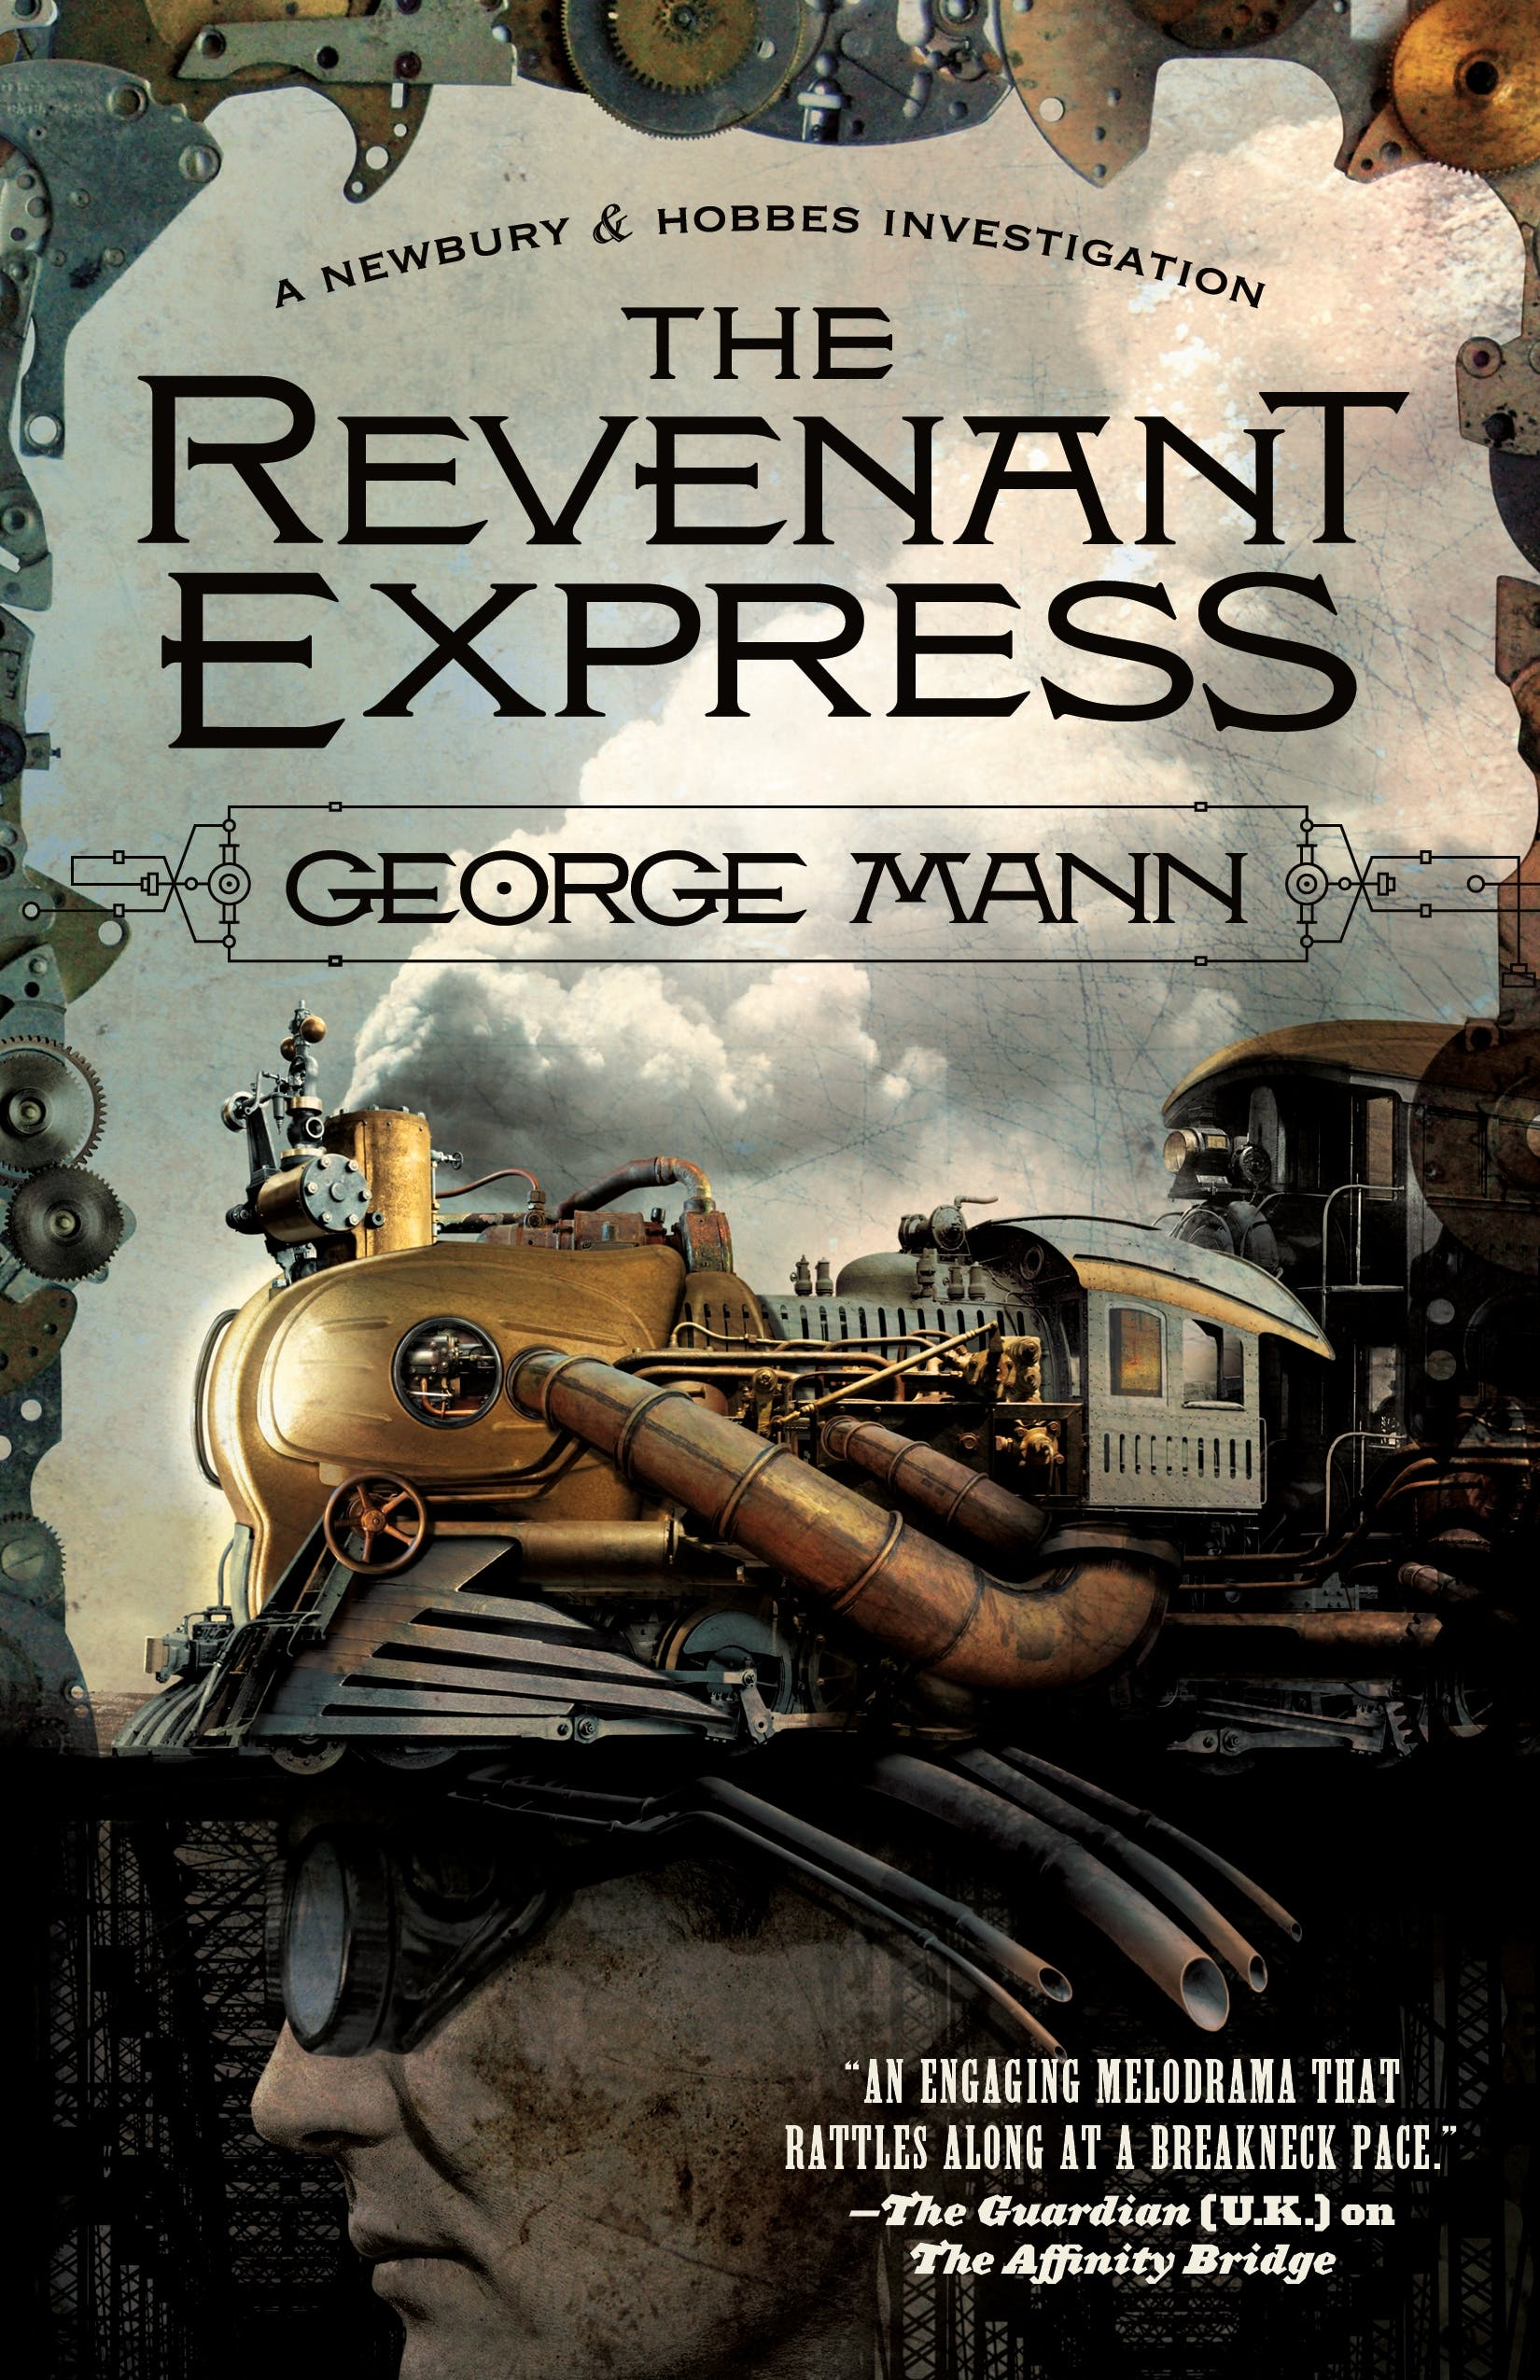 Image of The Revenant Express